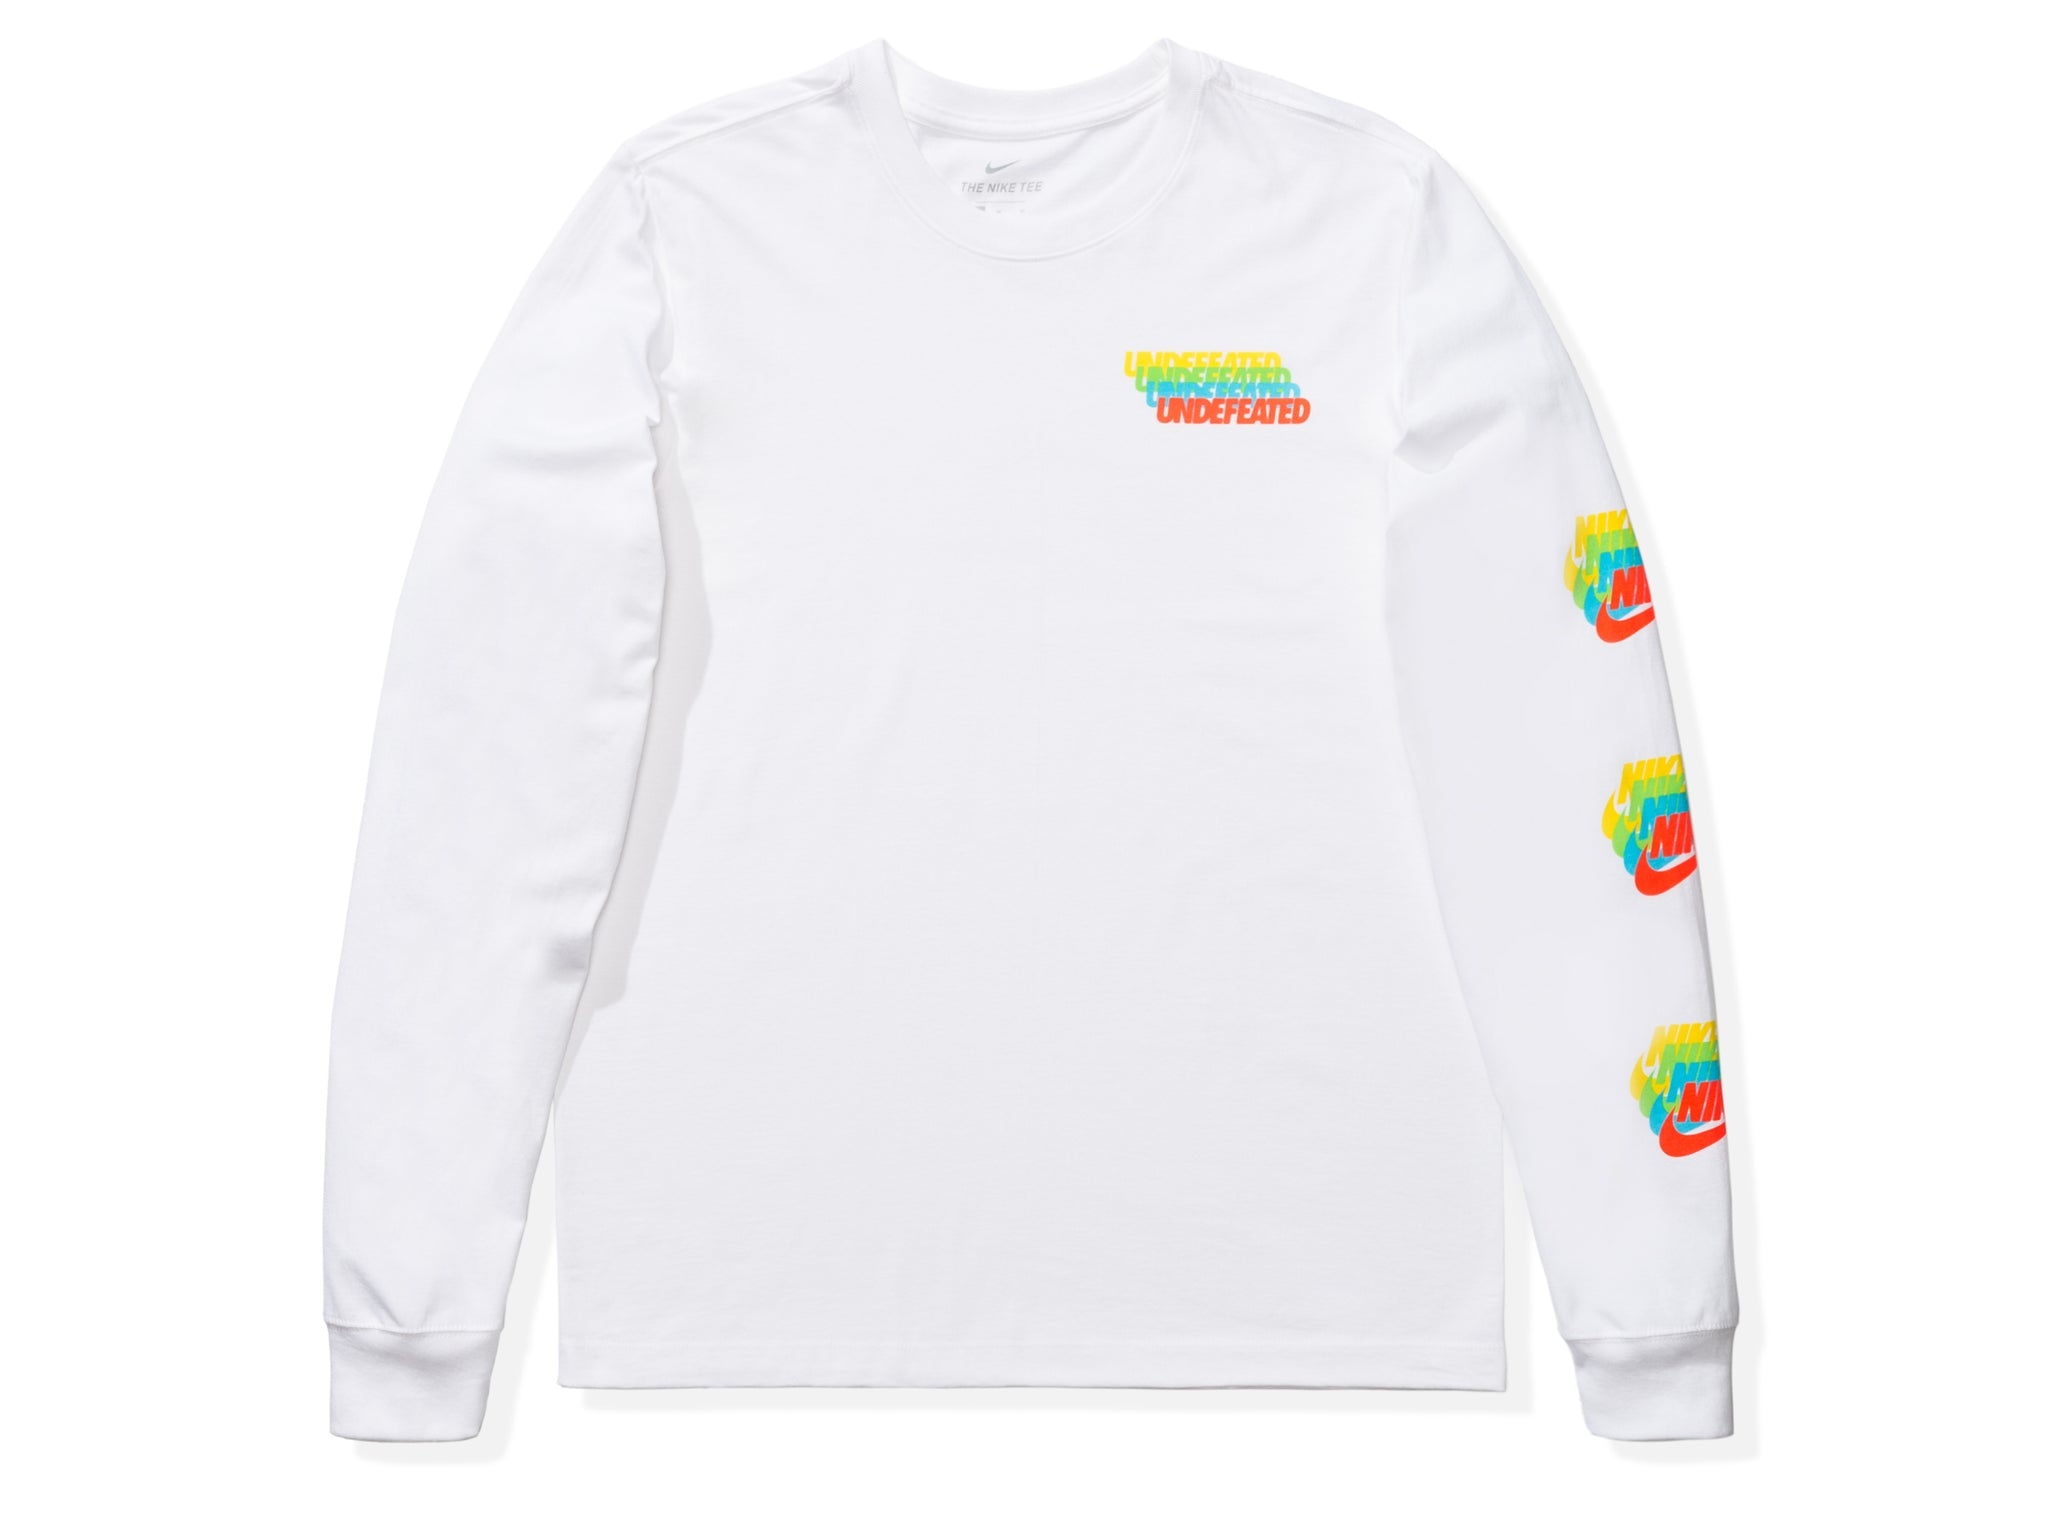 NIKE X UNDEFEATED LS TEE - WHITE